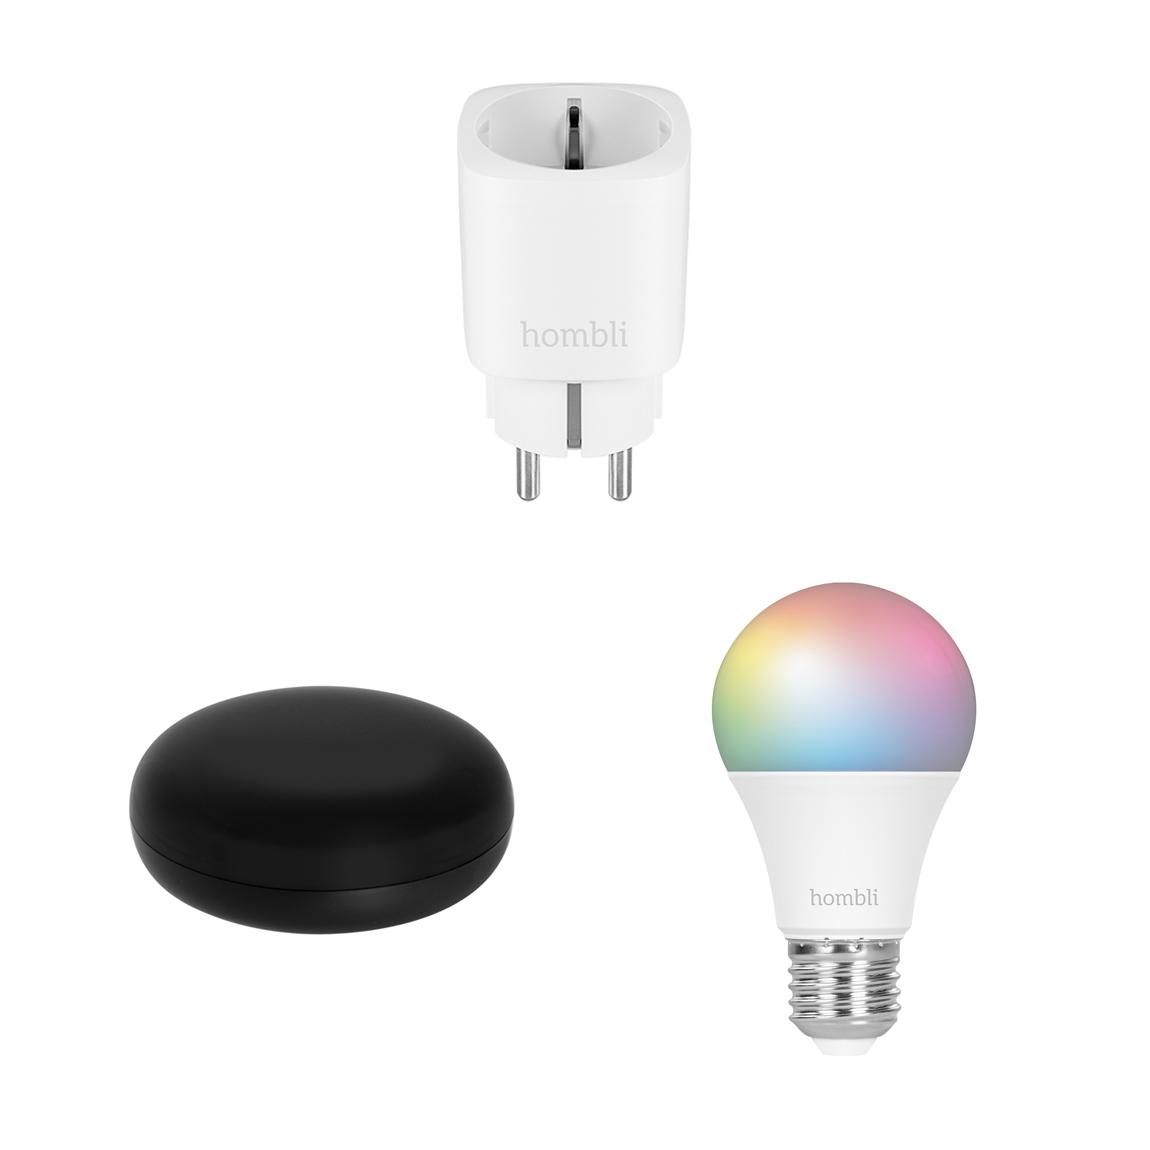 Hombli Smart Steckdose + IR Remote Control + E27 Color-Lampe